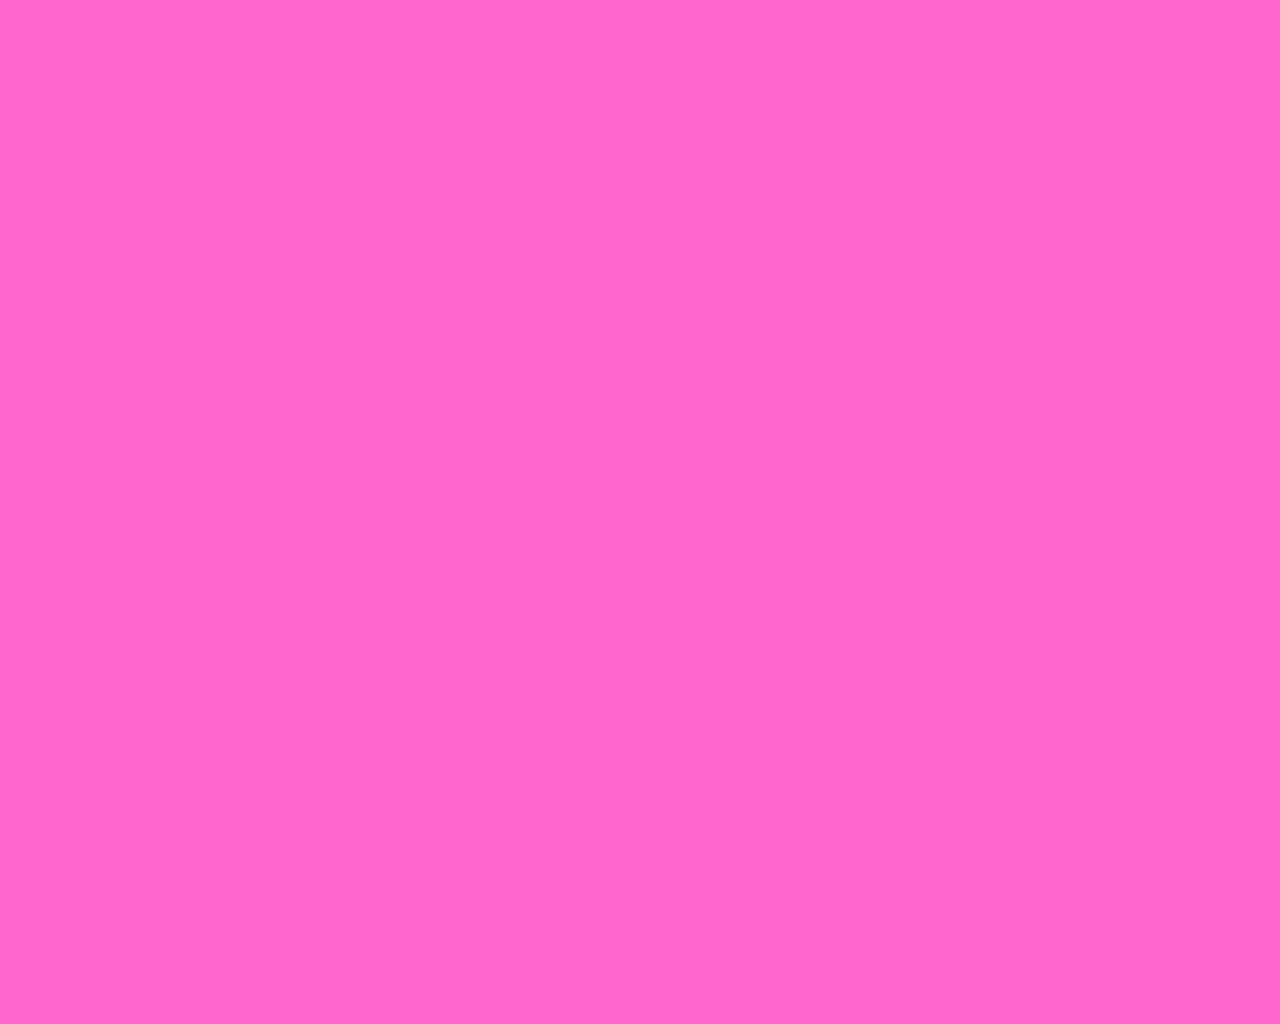 Color pink wallpaper wallpapersafari for Color pink coloring pages